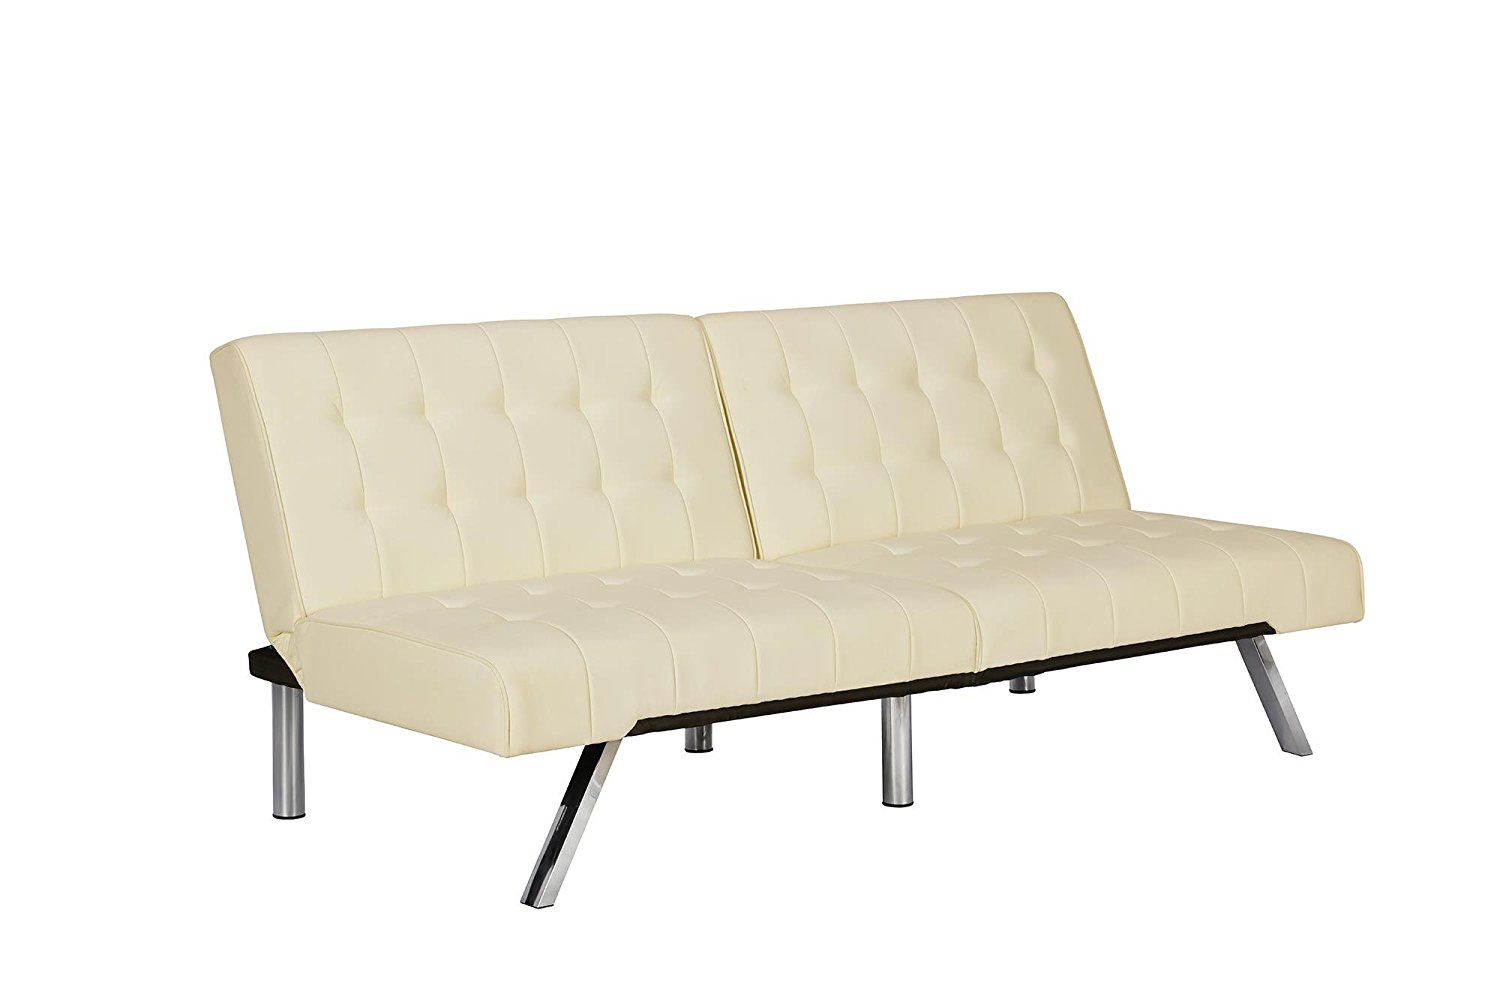 DHP Emily is one of the best futon sofa bed you can have it in your home. The affordable budget makes it simply the best